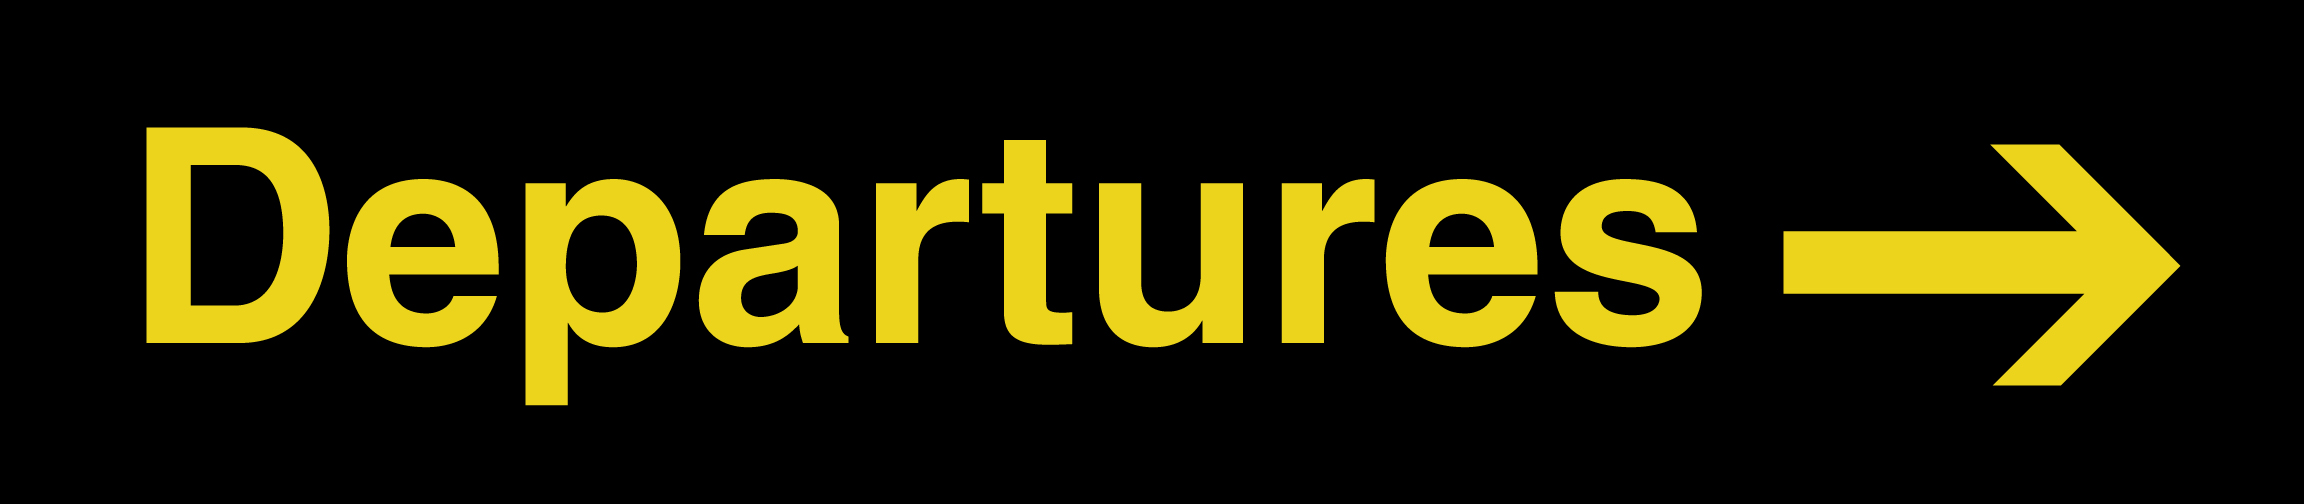 departure clipart - photo #8